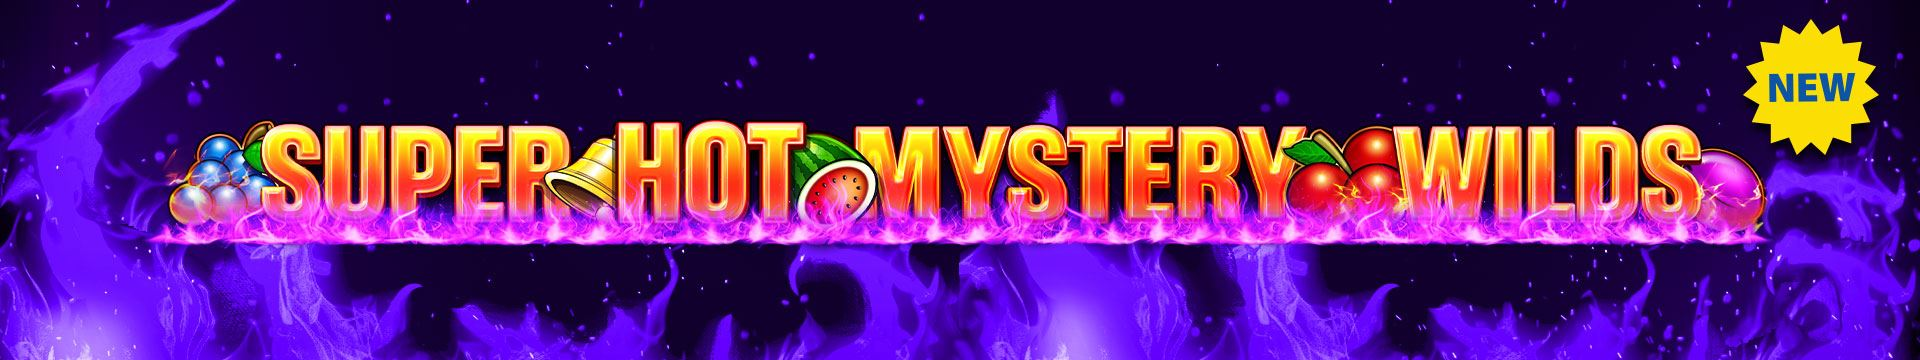 Super_Hot_Mystery_Wilds